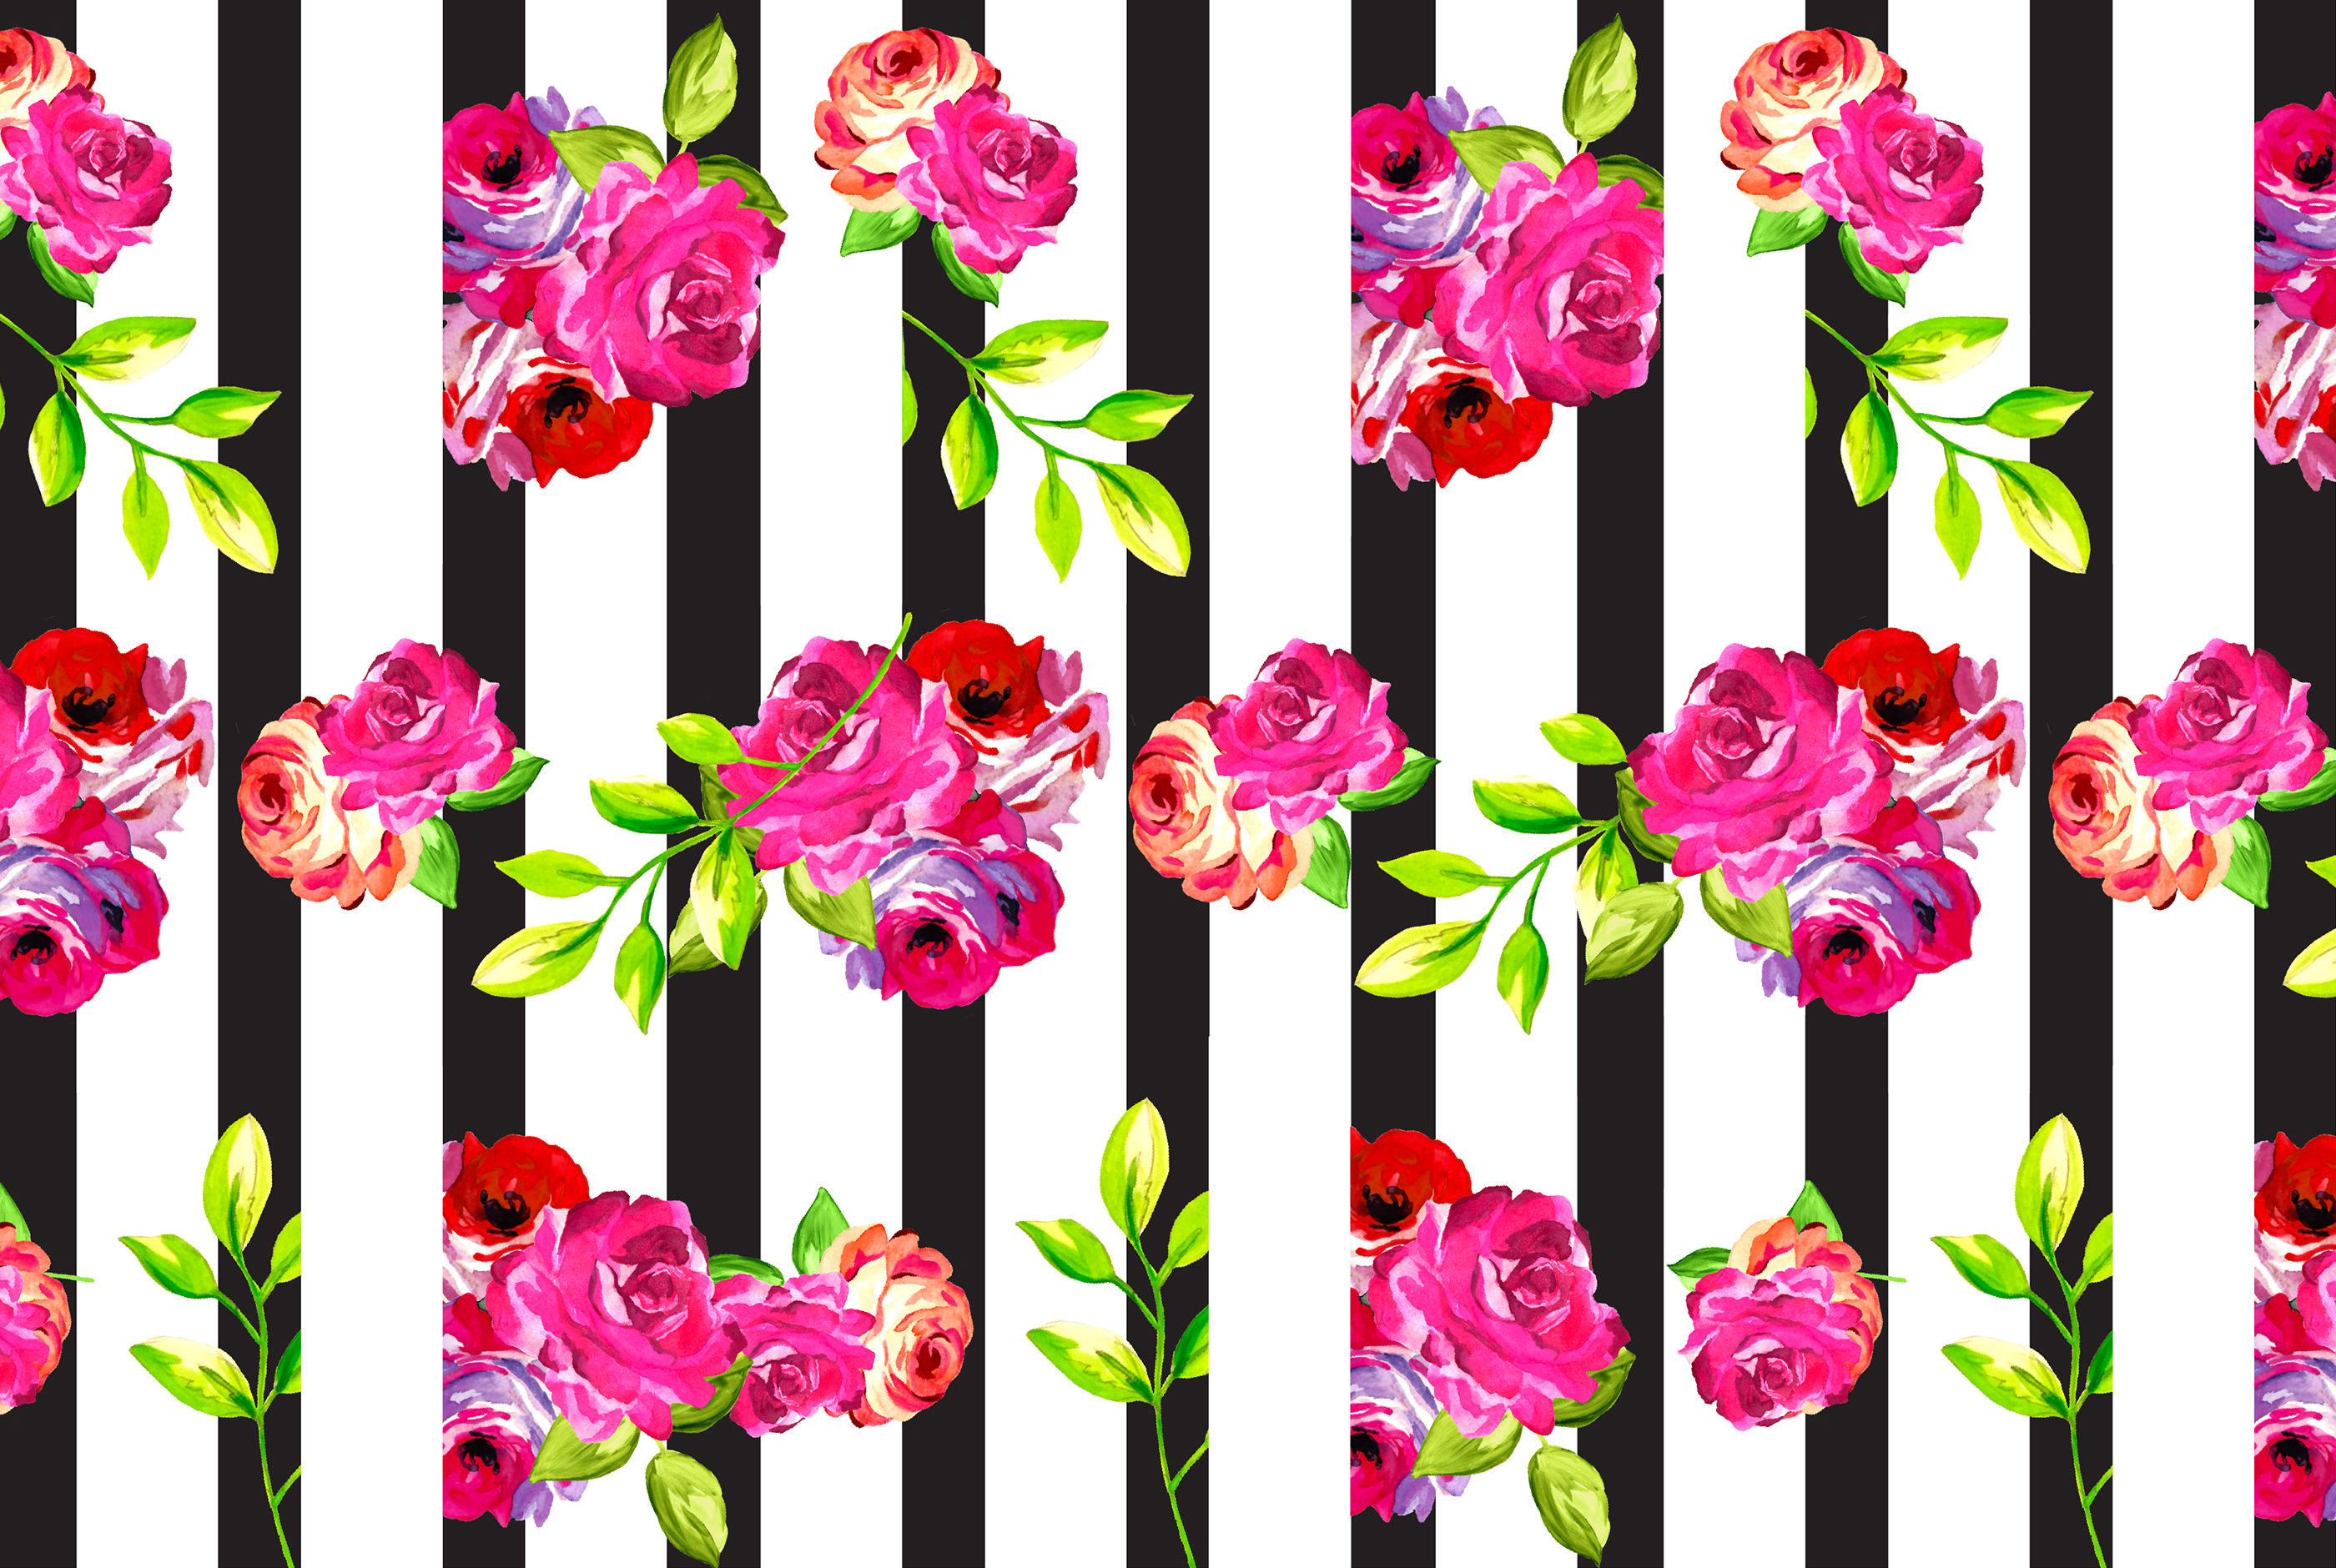 Floral Background Hd Wallpaper Background Image 2800x1880 Id